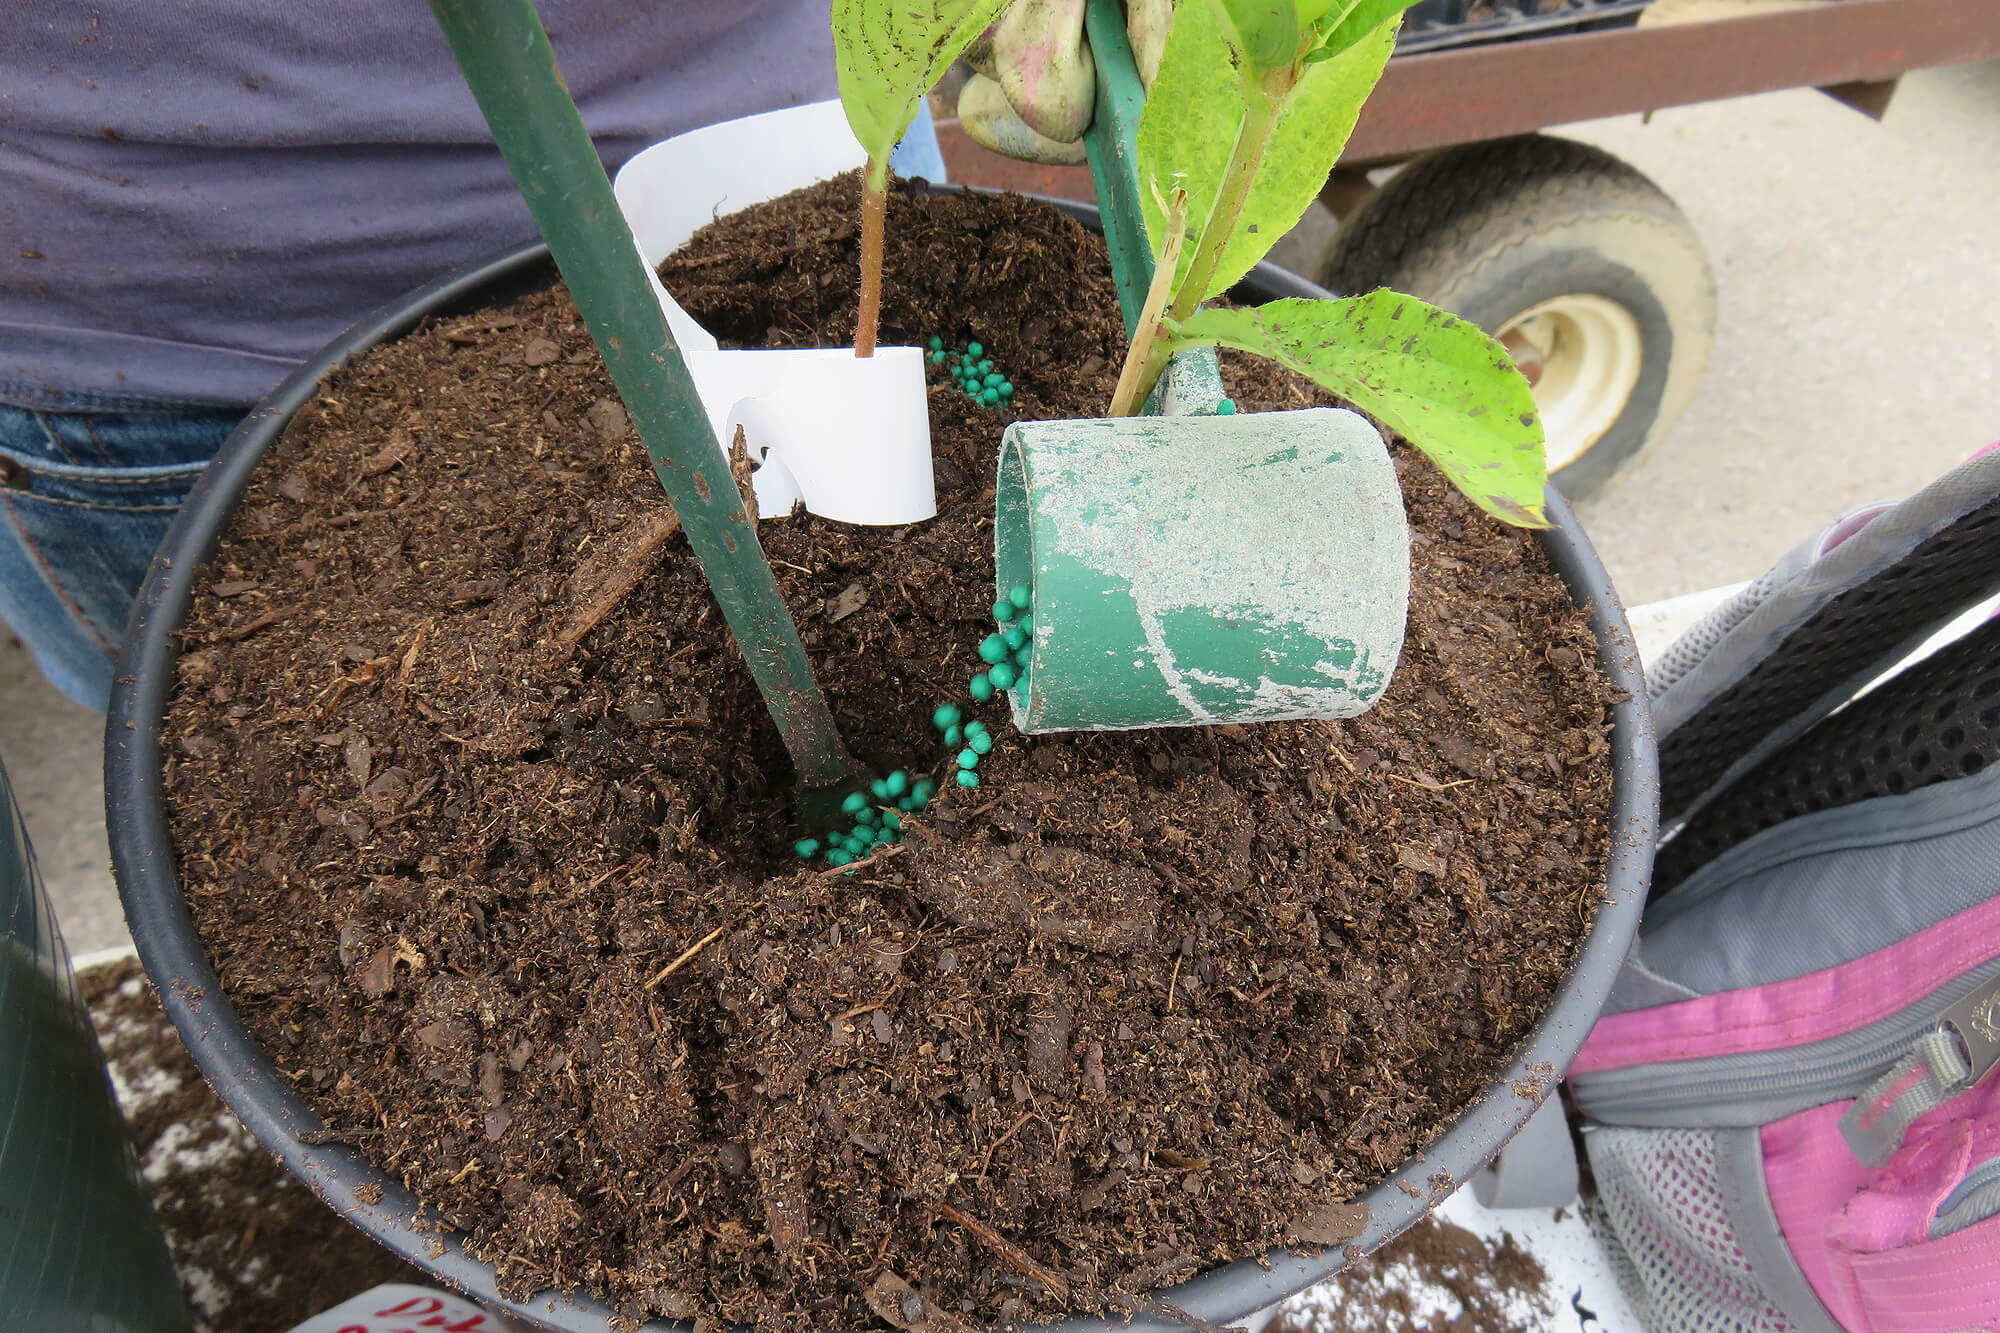 dibbling fertilizer into a plant in a pot